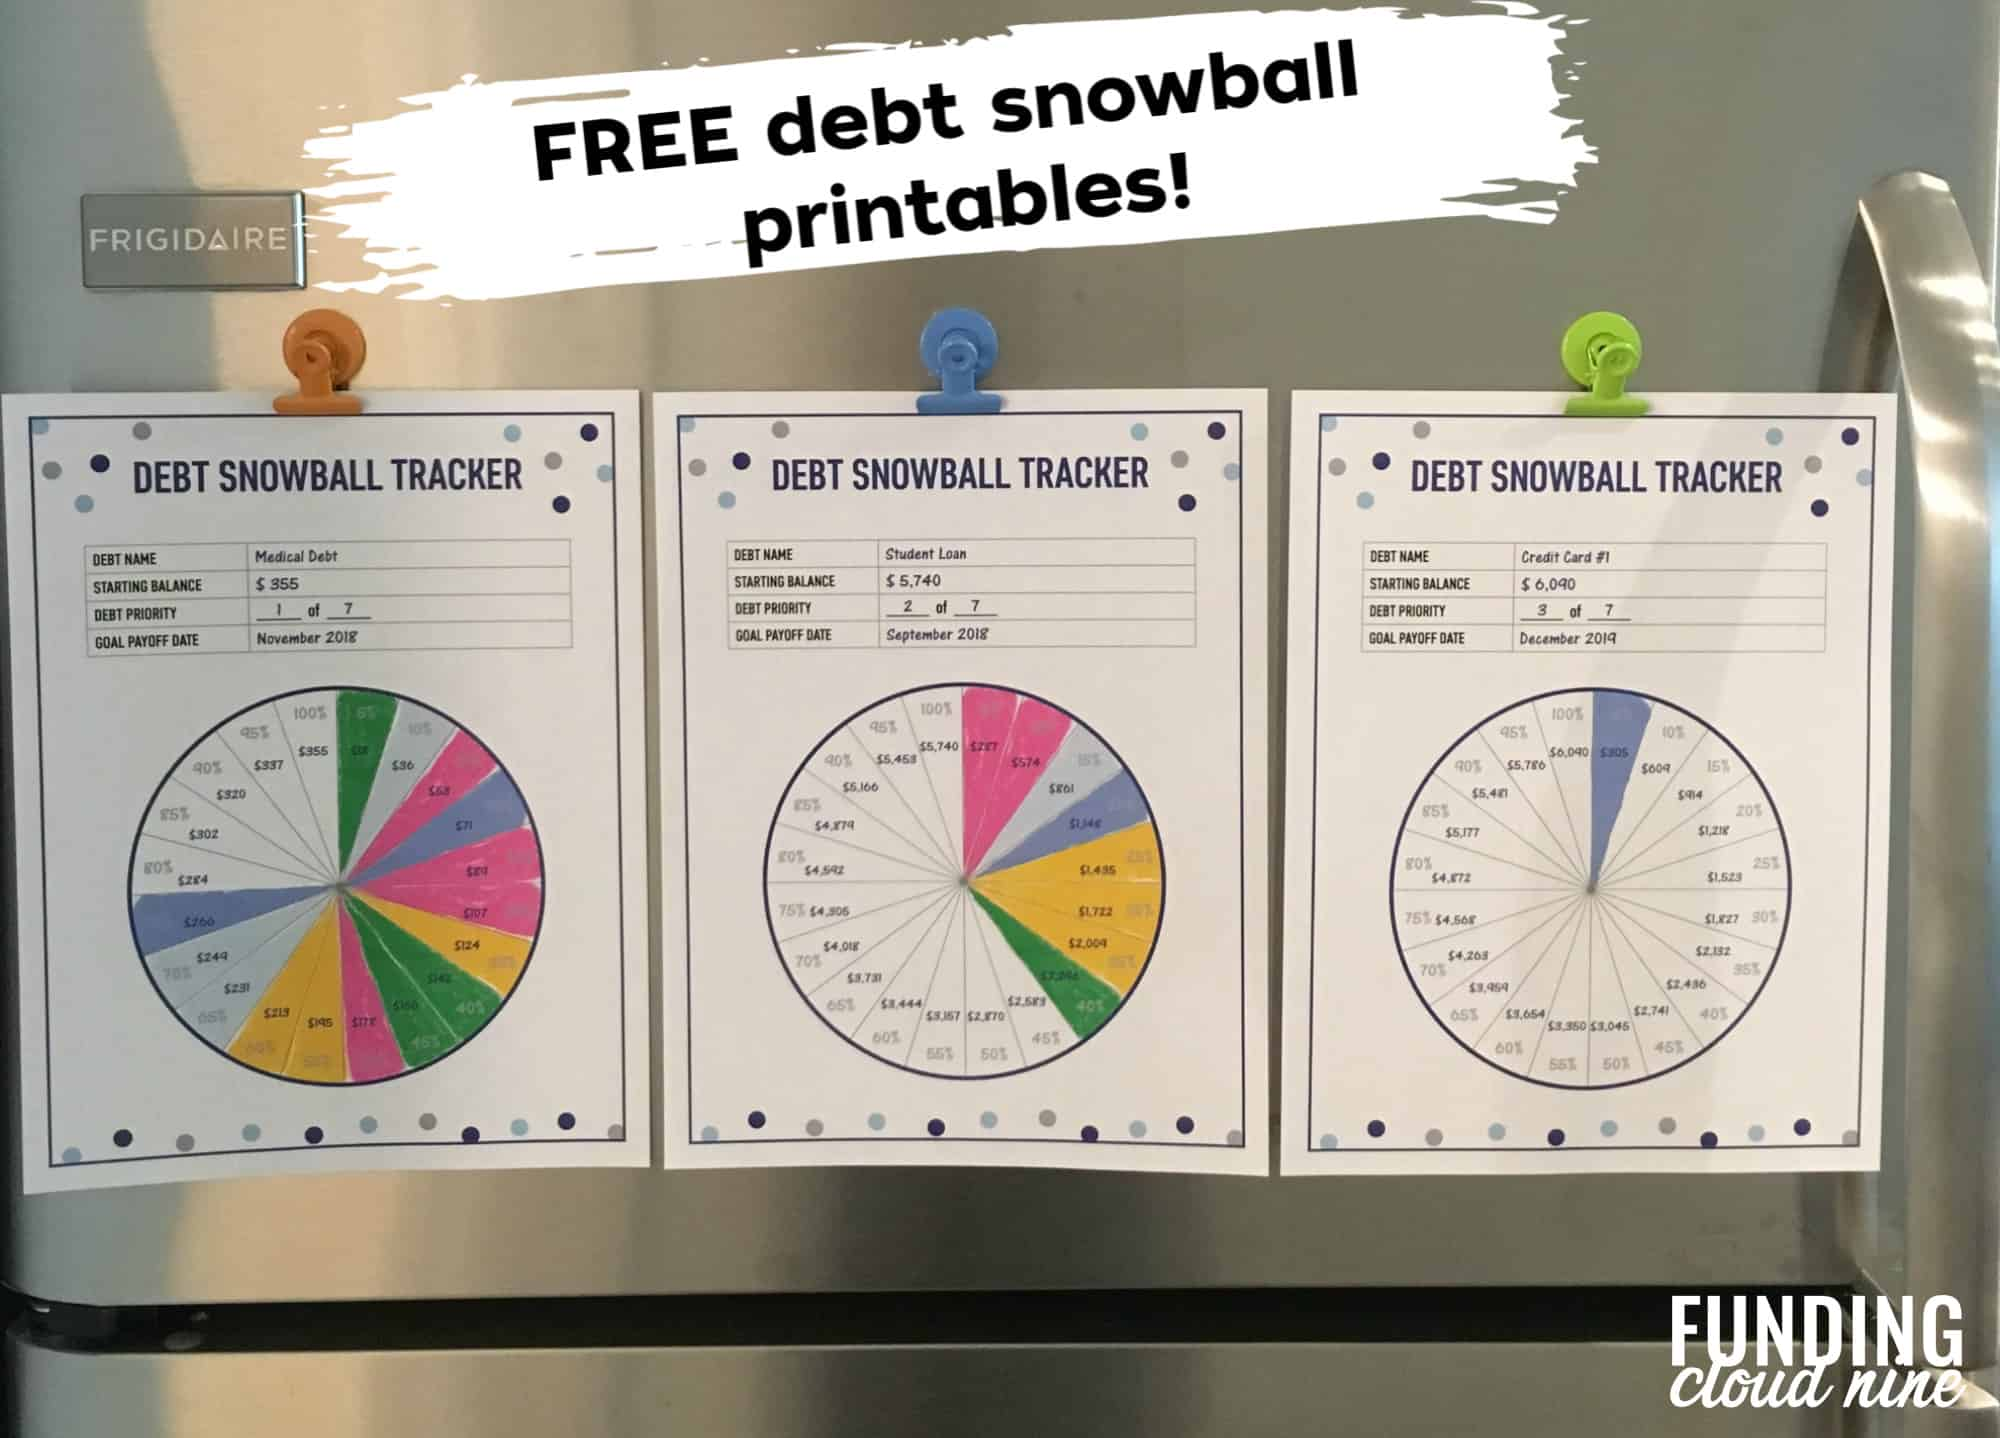 Debt snowball tracker examples on fridge to help you stay motivated during debt-free journey